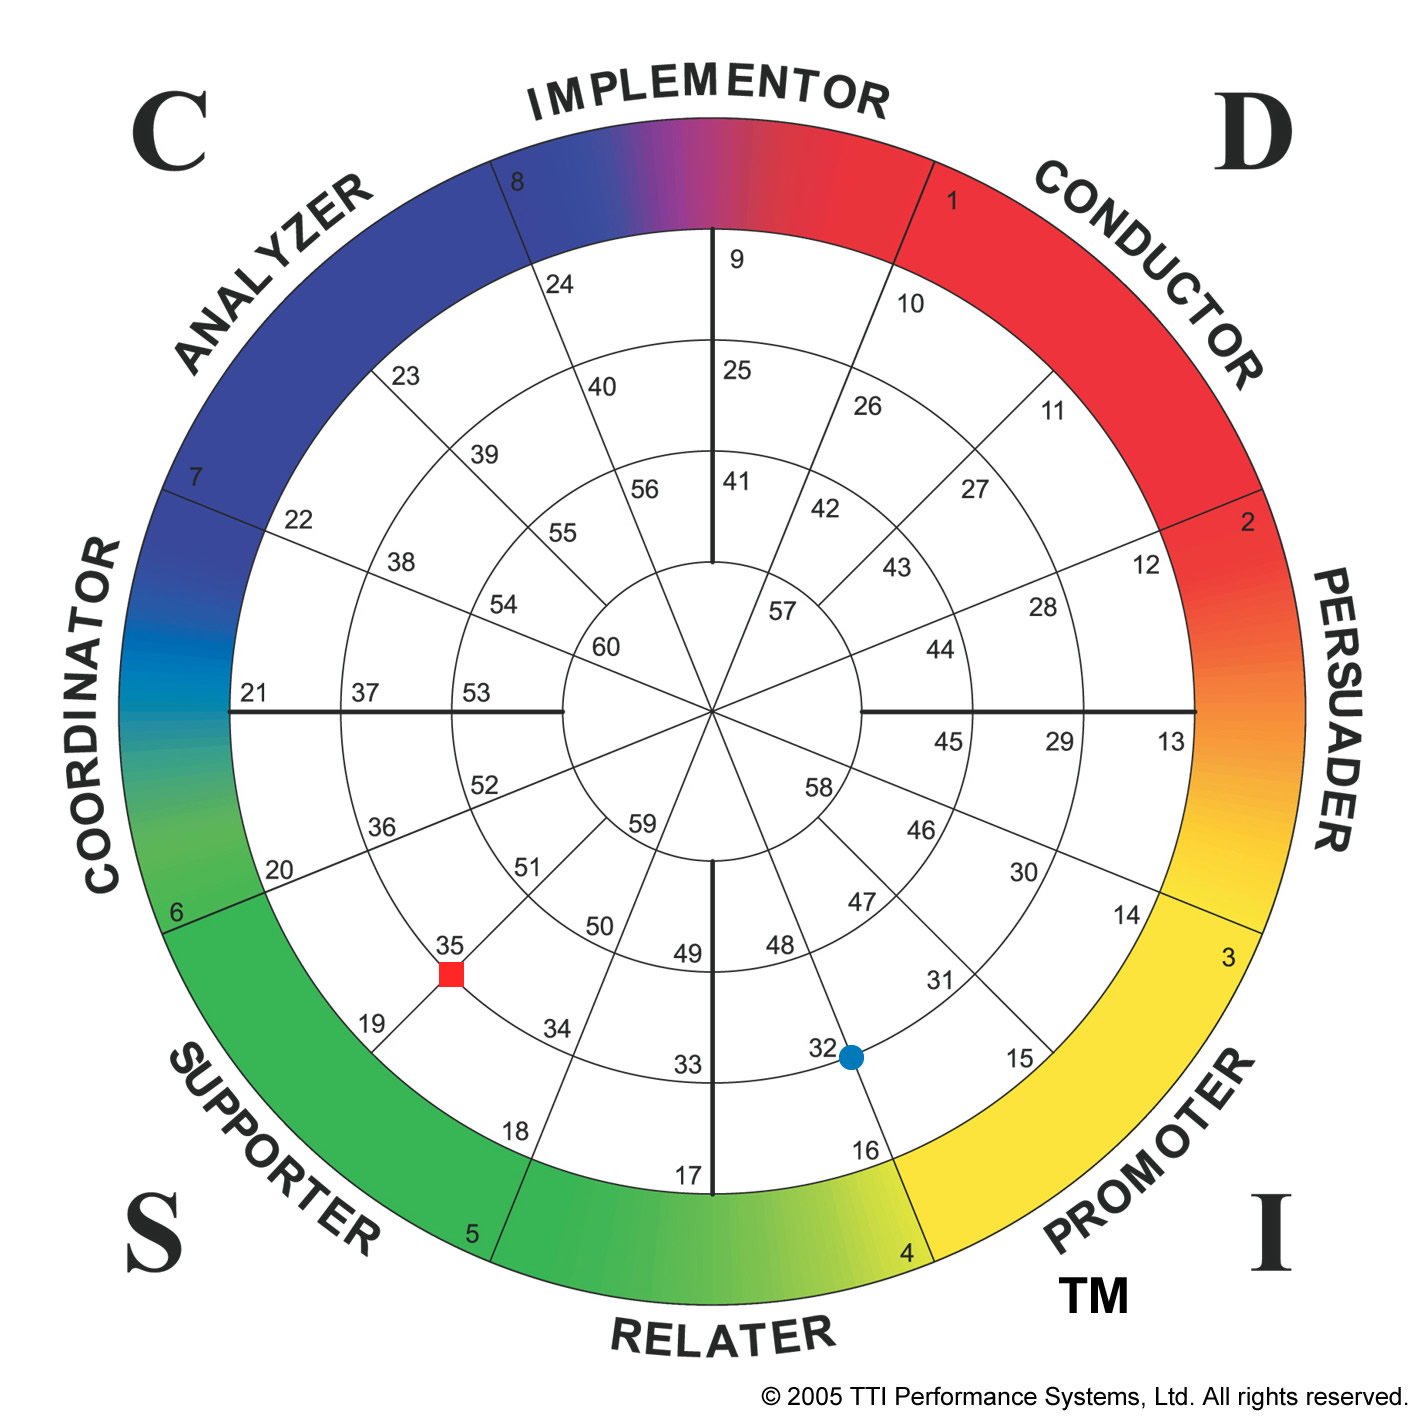 DISC Behavior Assessment